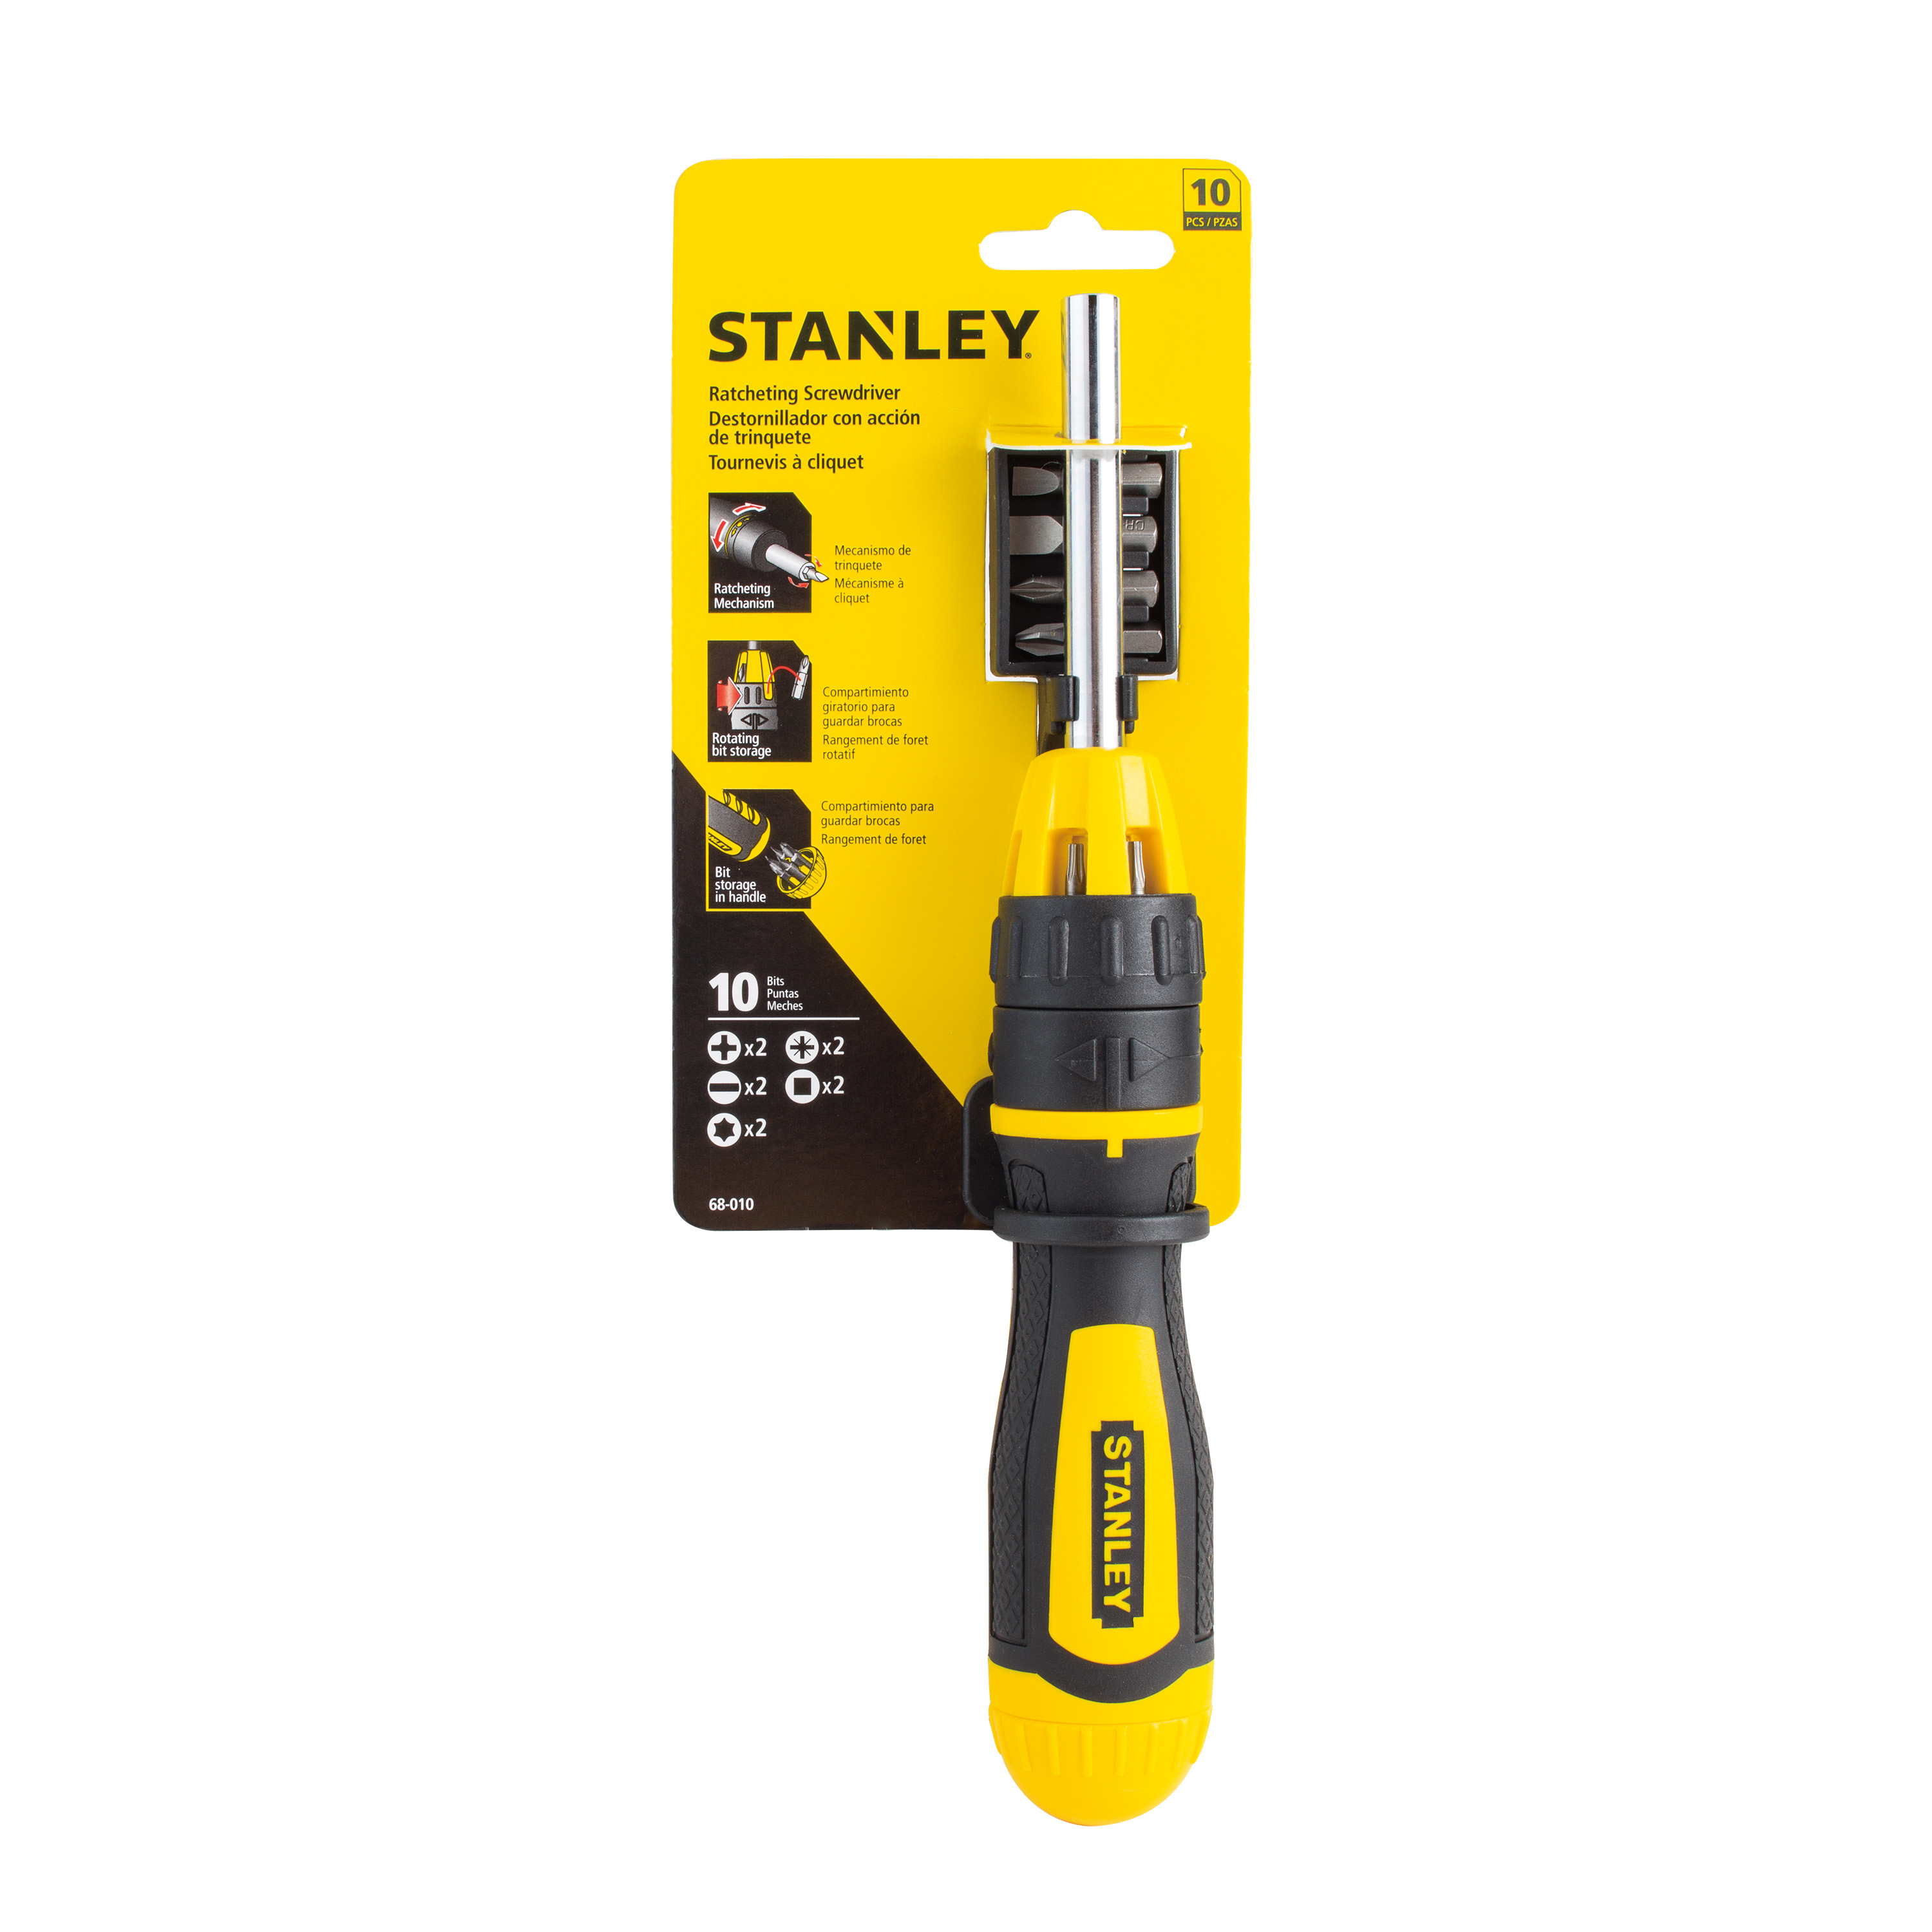 STANLEY® 68-010W - 10pc Ratcheting Screwdriver